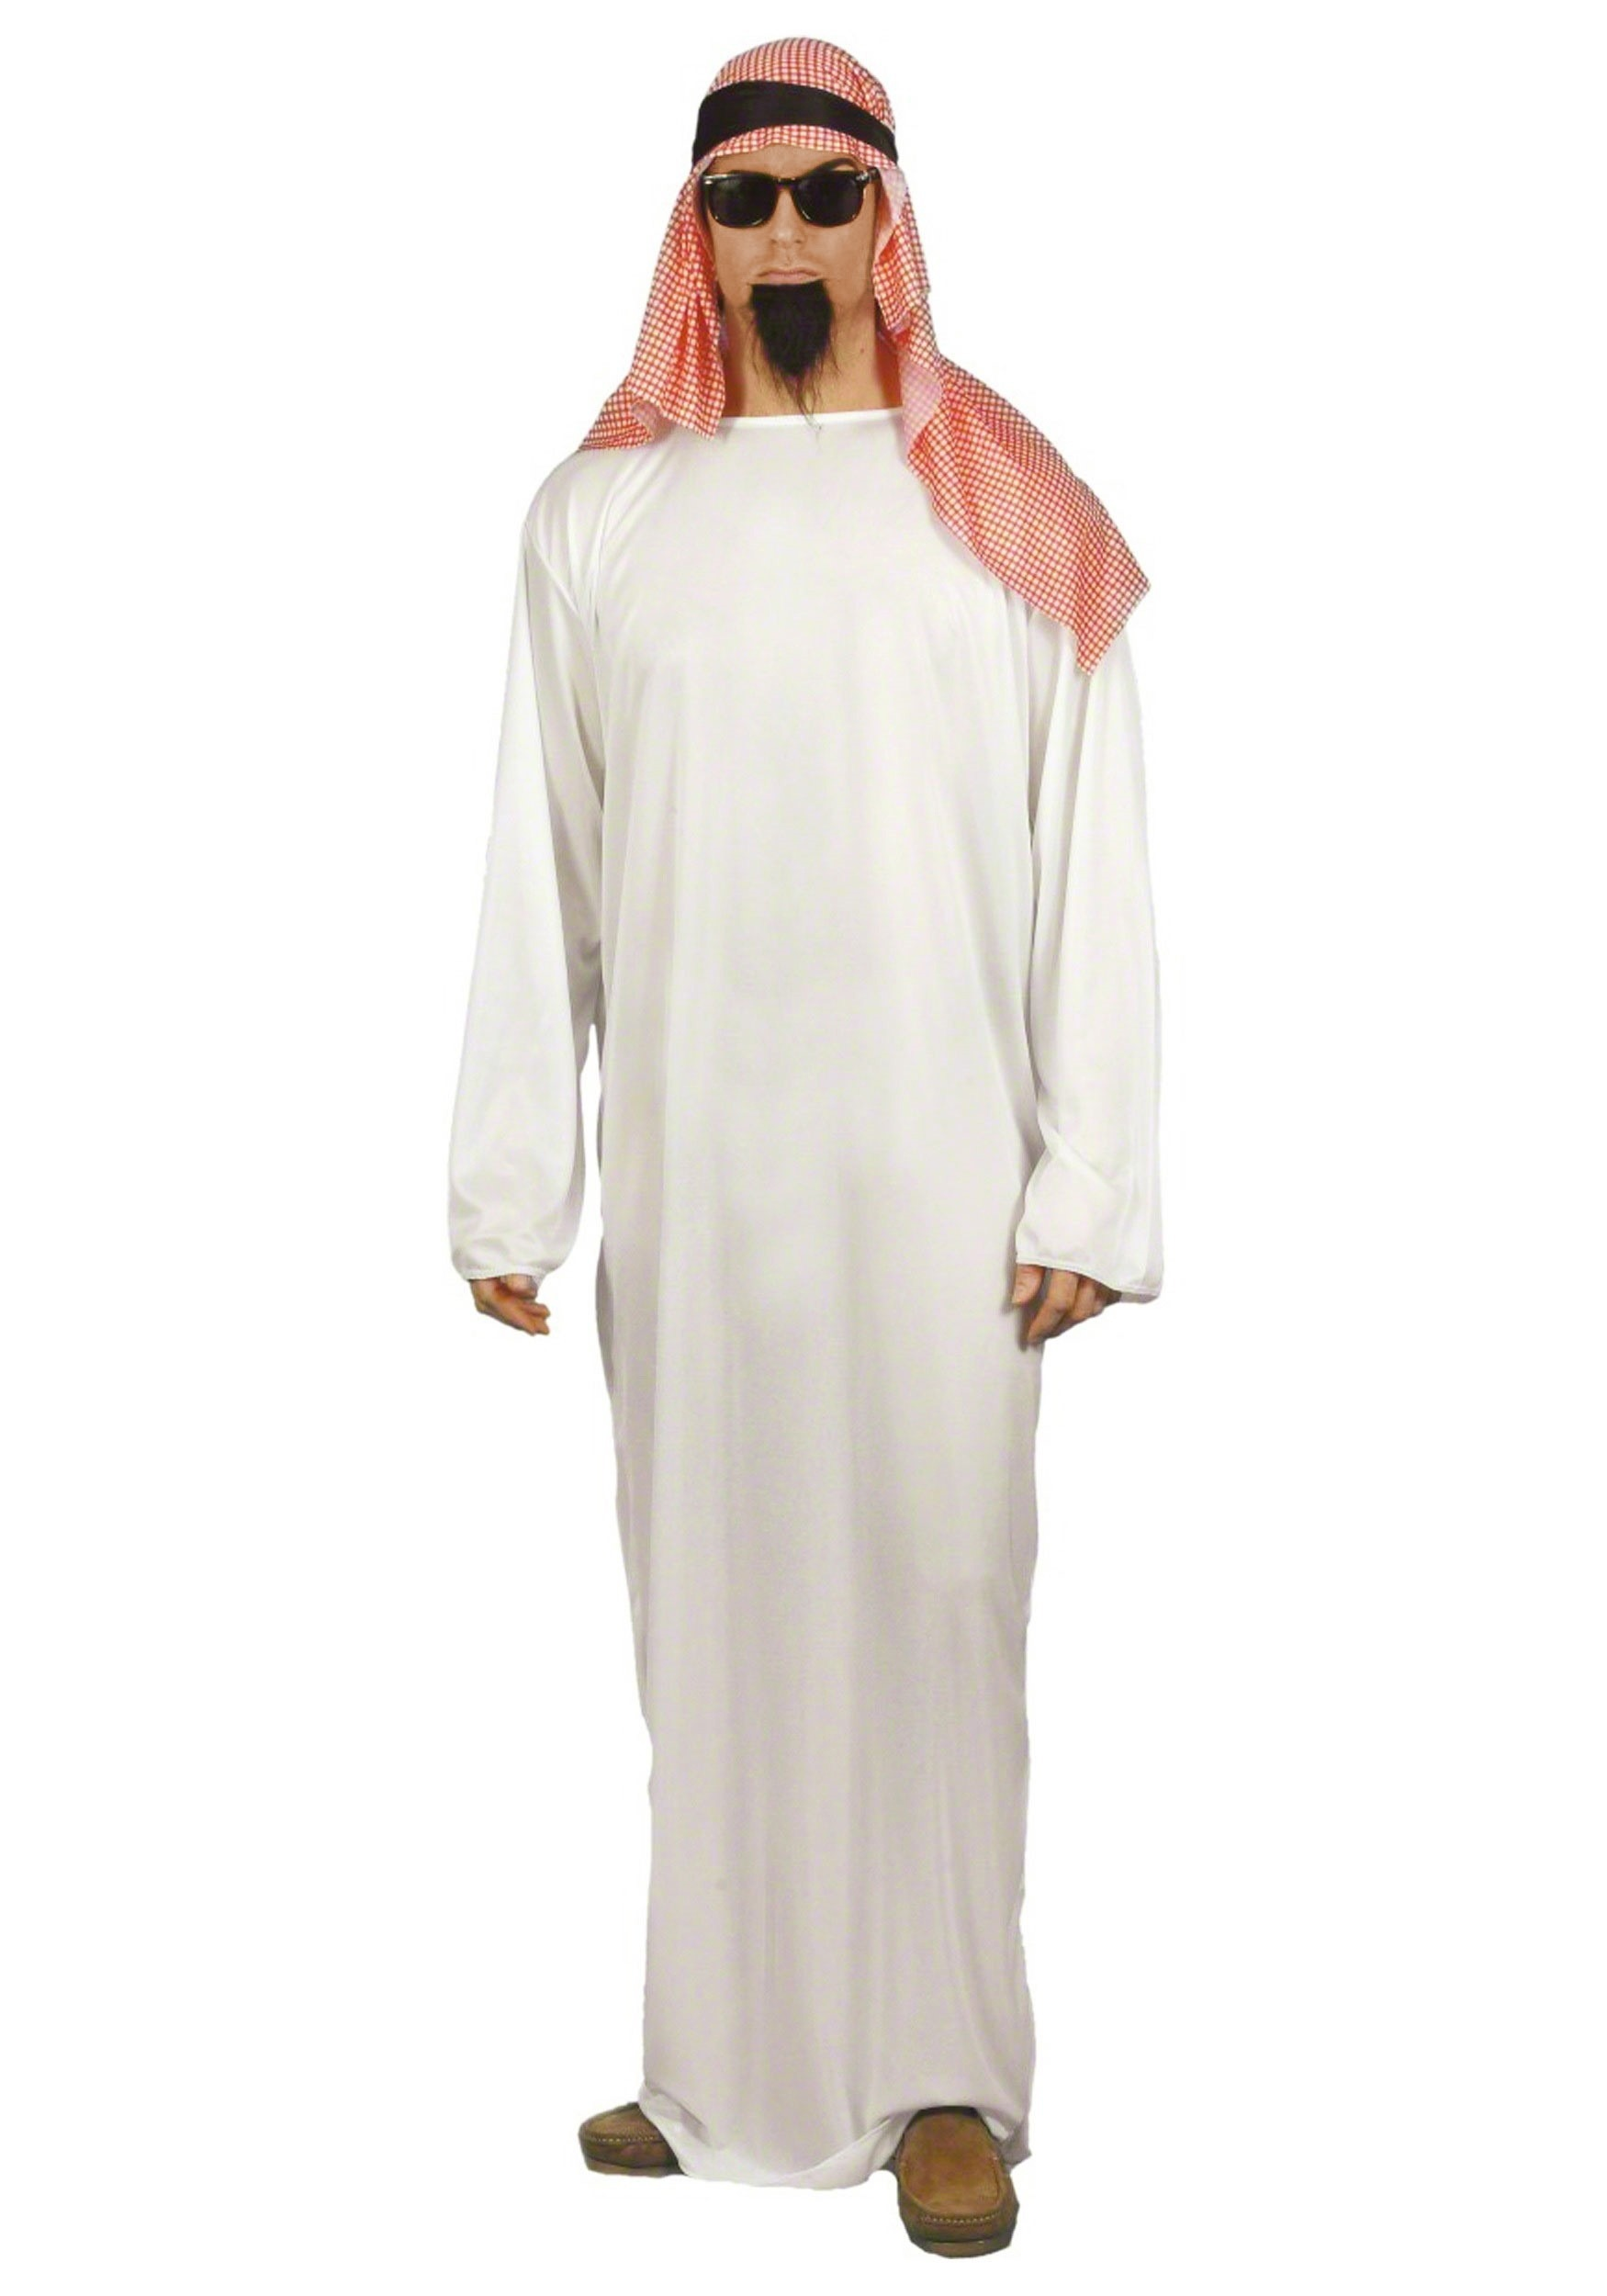 sc 1 st  Halloween Costumes : sheik halloween costume  - Germanpascual.Com